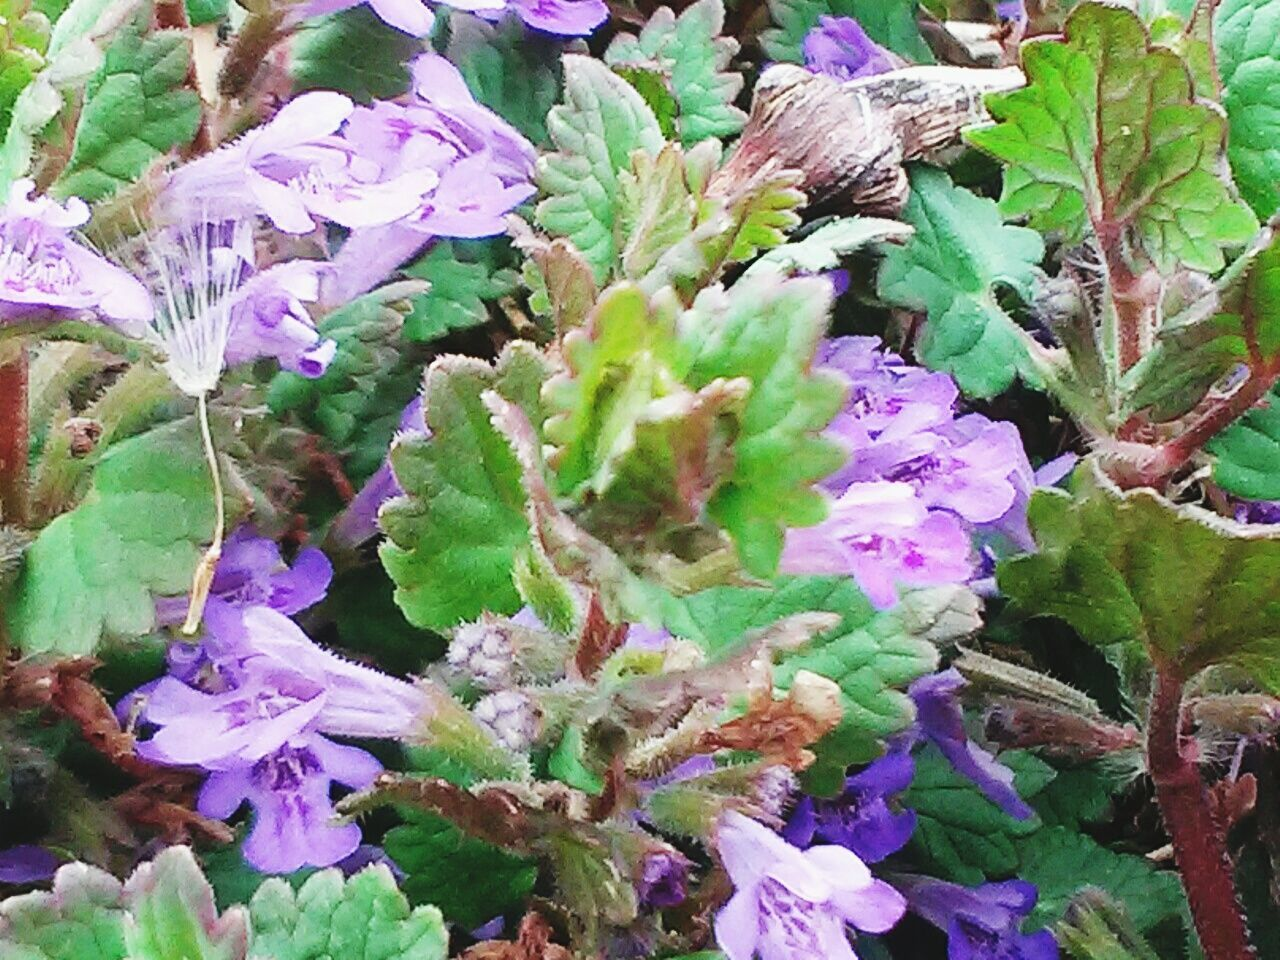 plant, flower, growth, nature, leaf, fragility, no people, purple, beauty in nature, day, outdoors, freshness, close-up, flower head